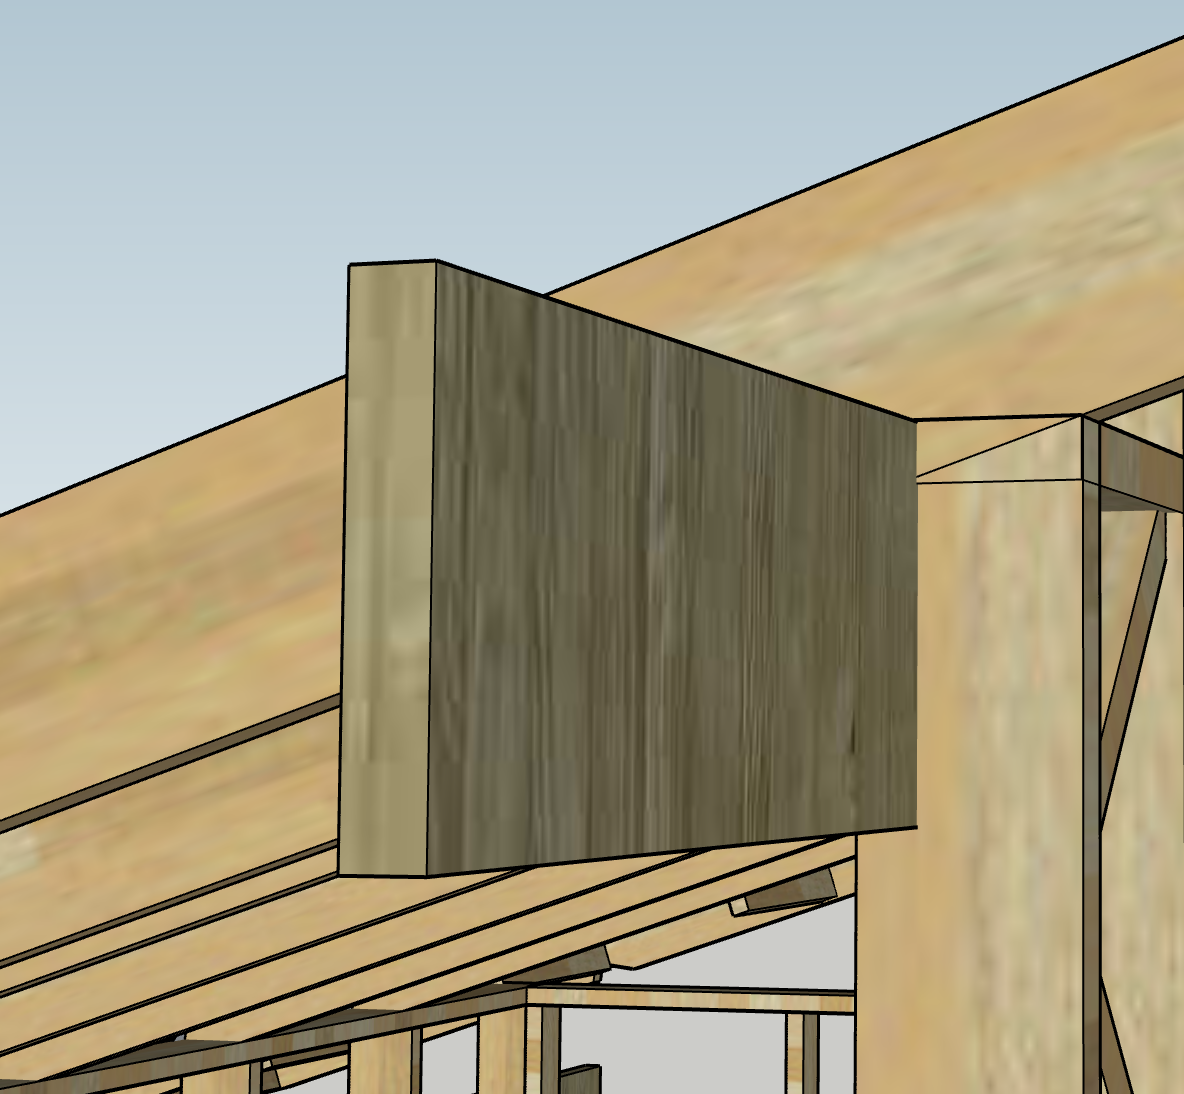 Shed / workshop framing design--is it too ambitious?-screen-shot-2020-04-27-2.33.18-pm.png